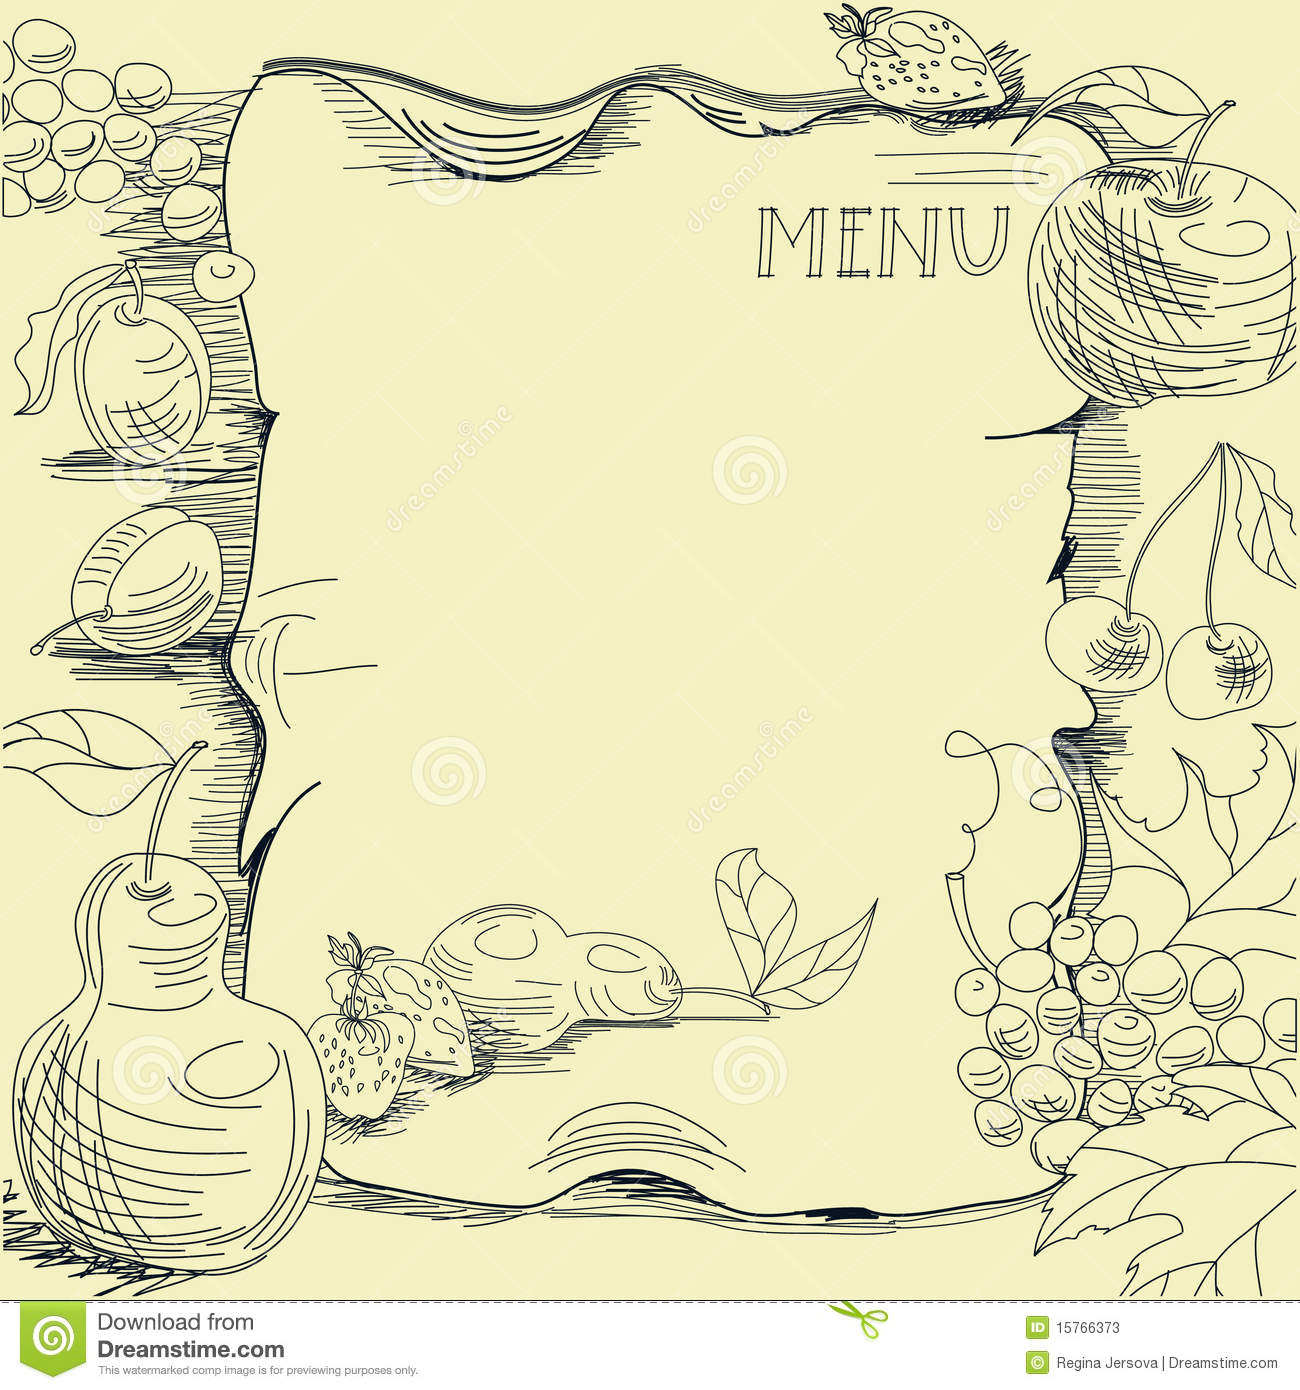 restaurant menu templates for mac - template for restaurant menu stock vector illustration